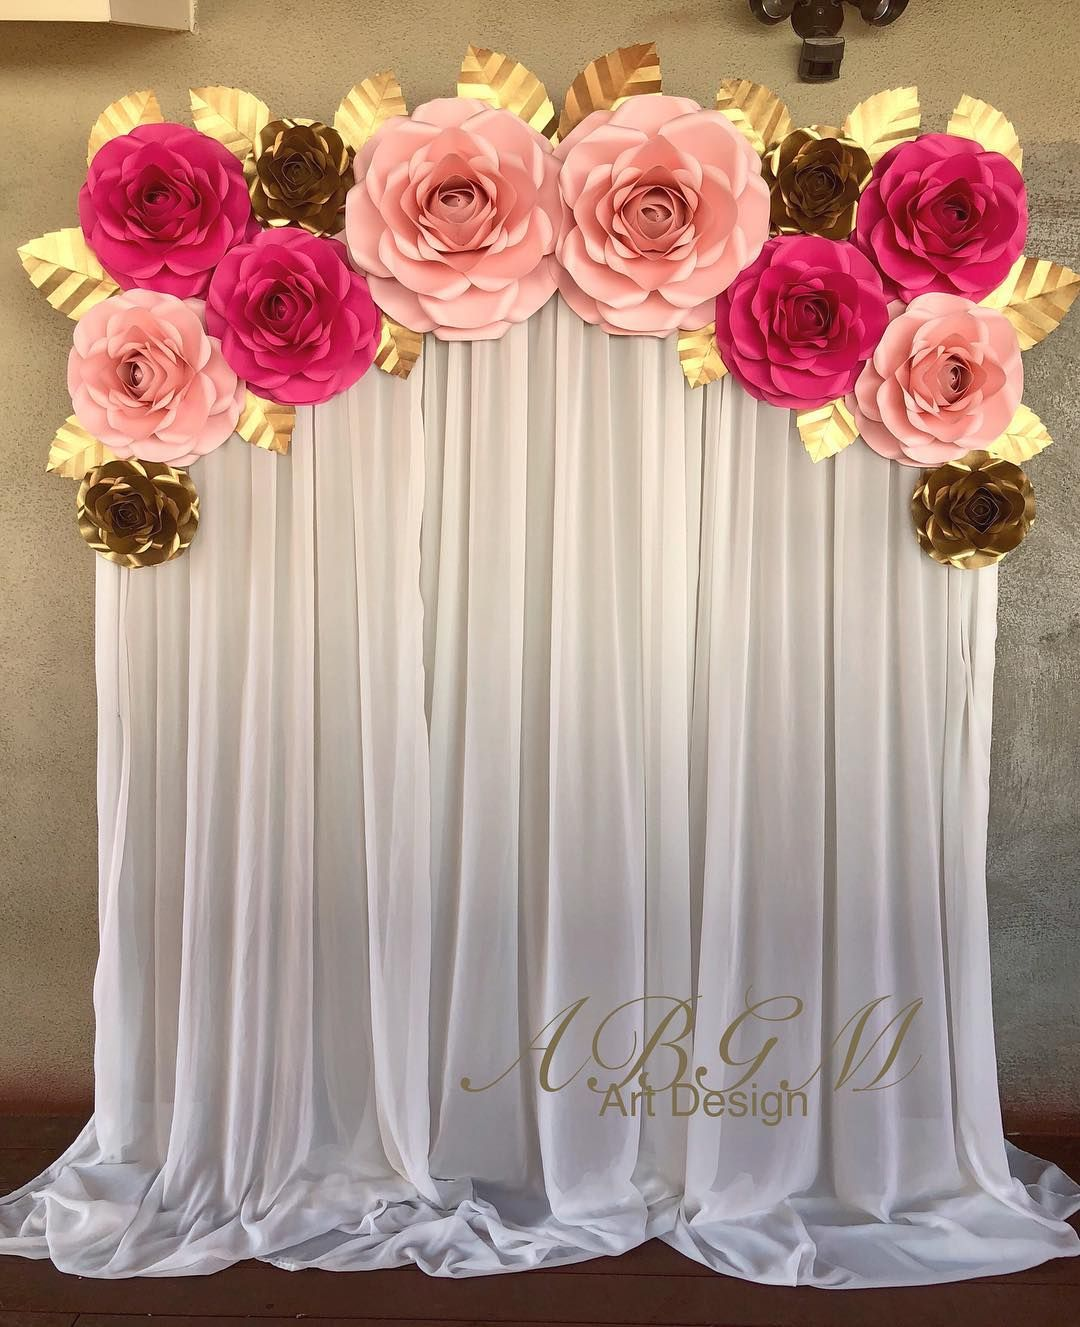 Backdrop With Large Medium And Small Roses In Colors Hot Pink Gold